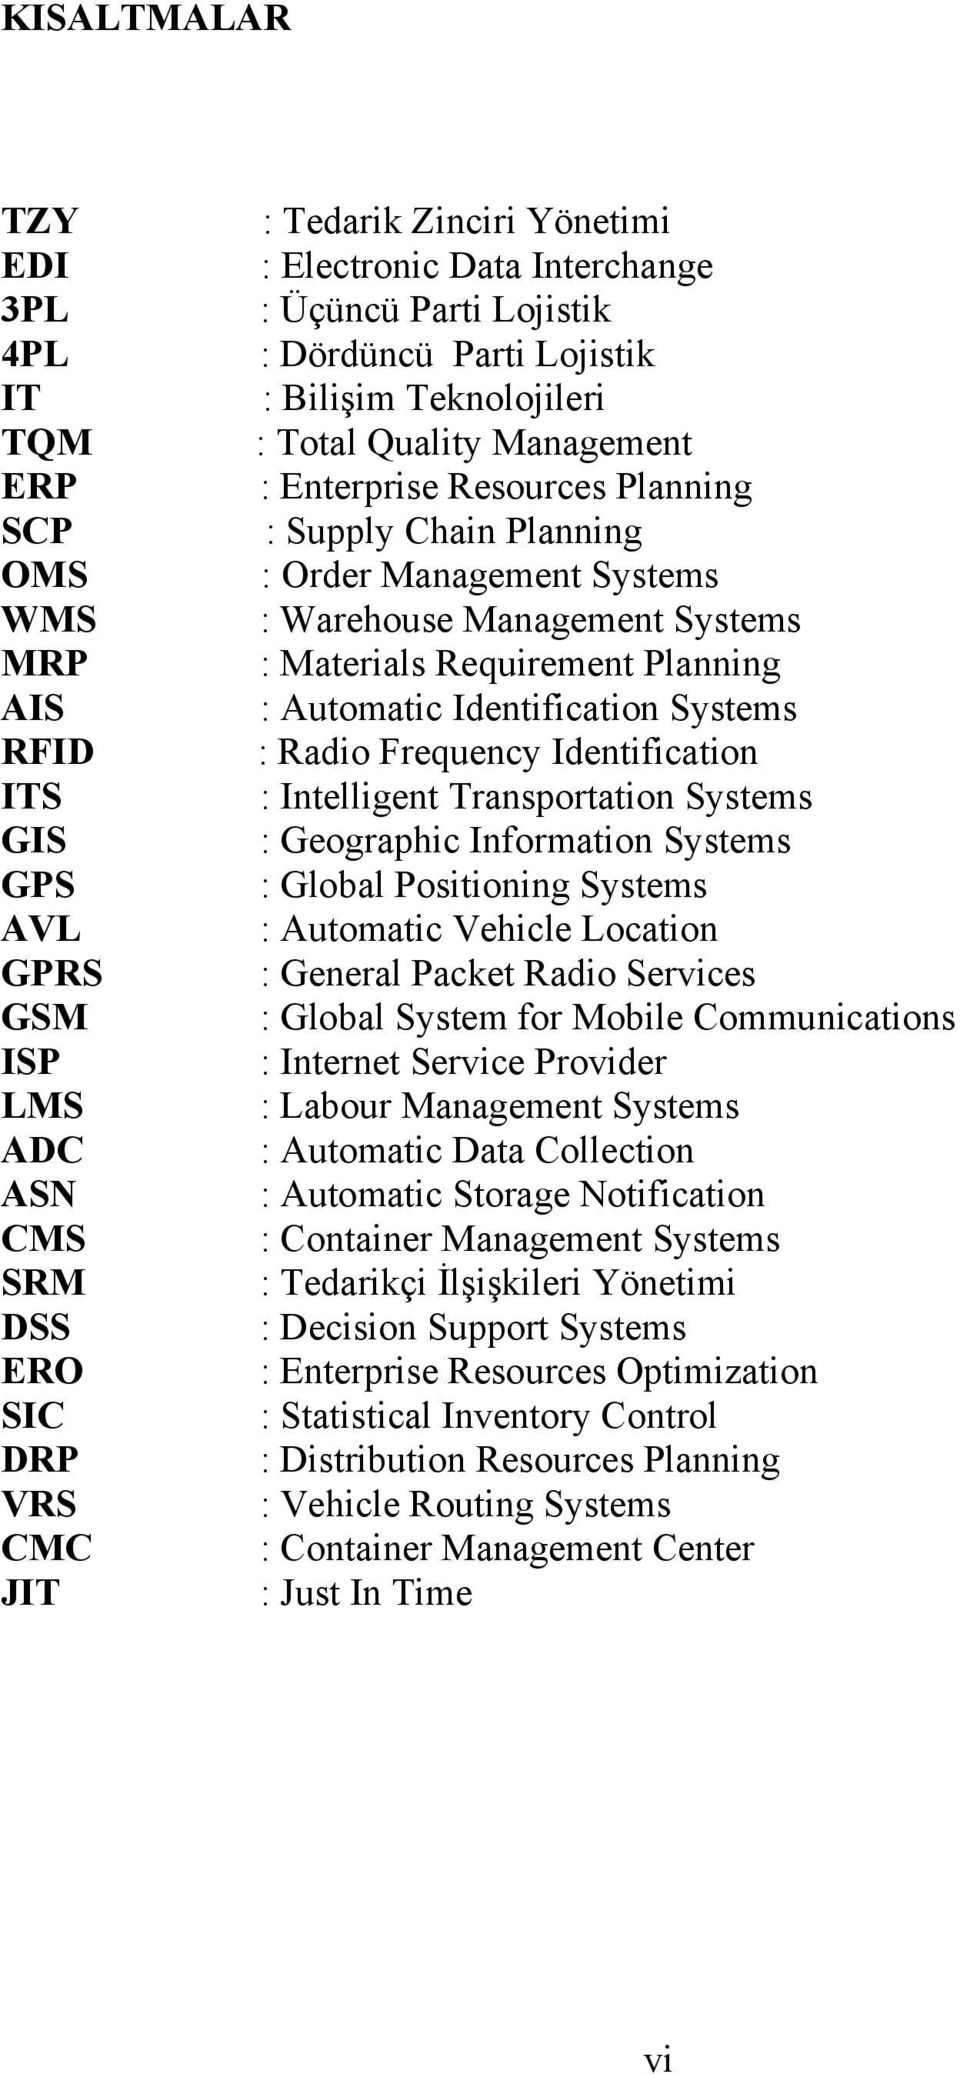 Management Systems : Materials Requirement Planning : Automatic Identification Systems : Radio Frequency Identification : Intelligent Transportation Systems : Geographic Information Systems : Global